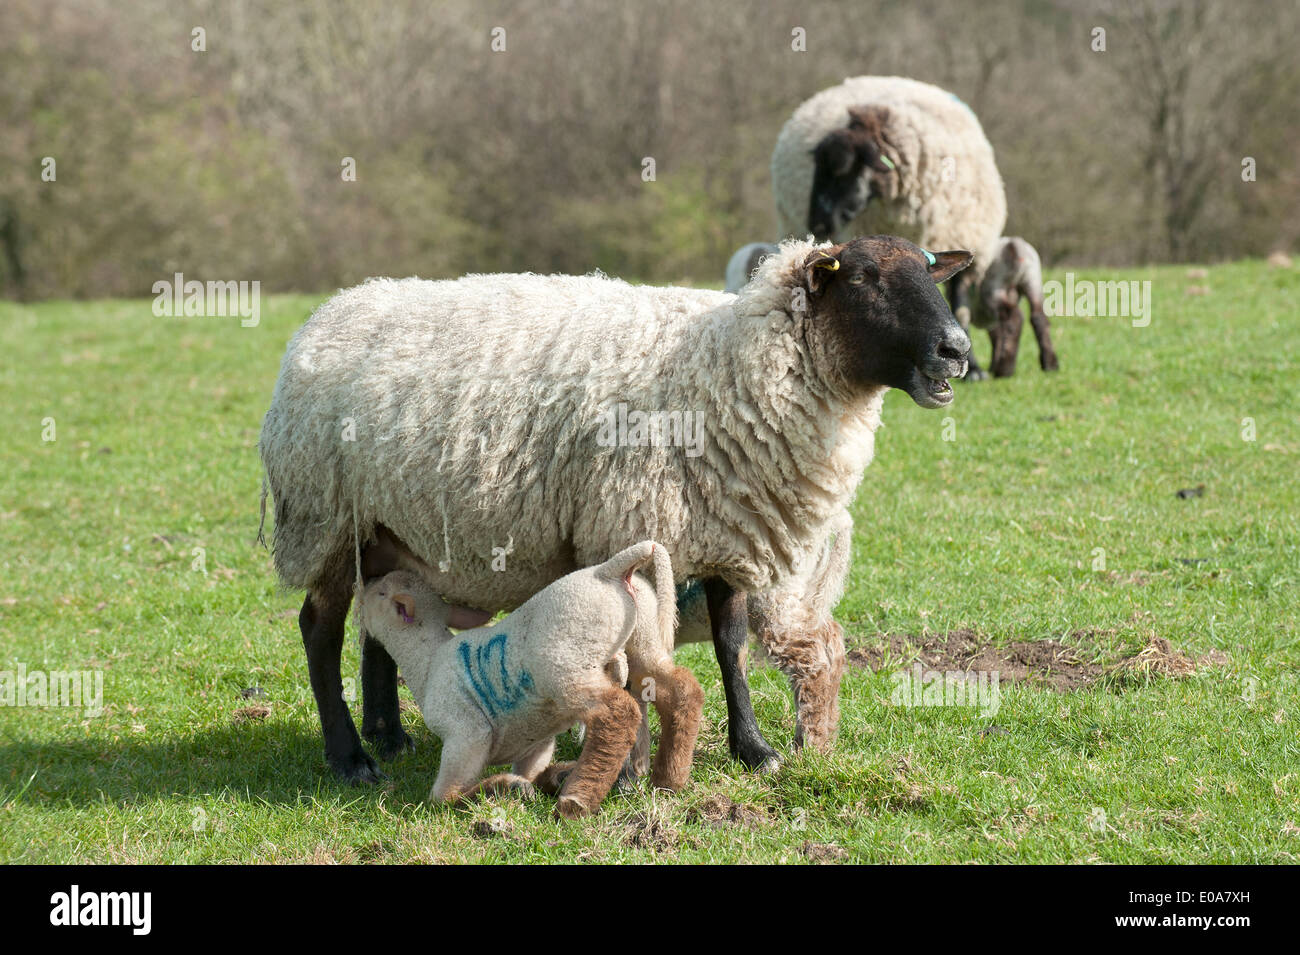 Lamb feeding from ewe. South Downs National Park, Hampshire UK - Stock Image